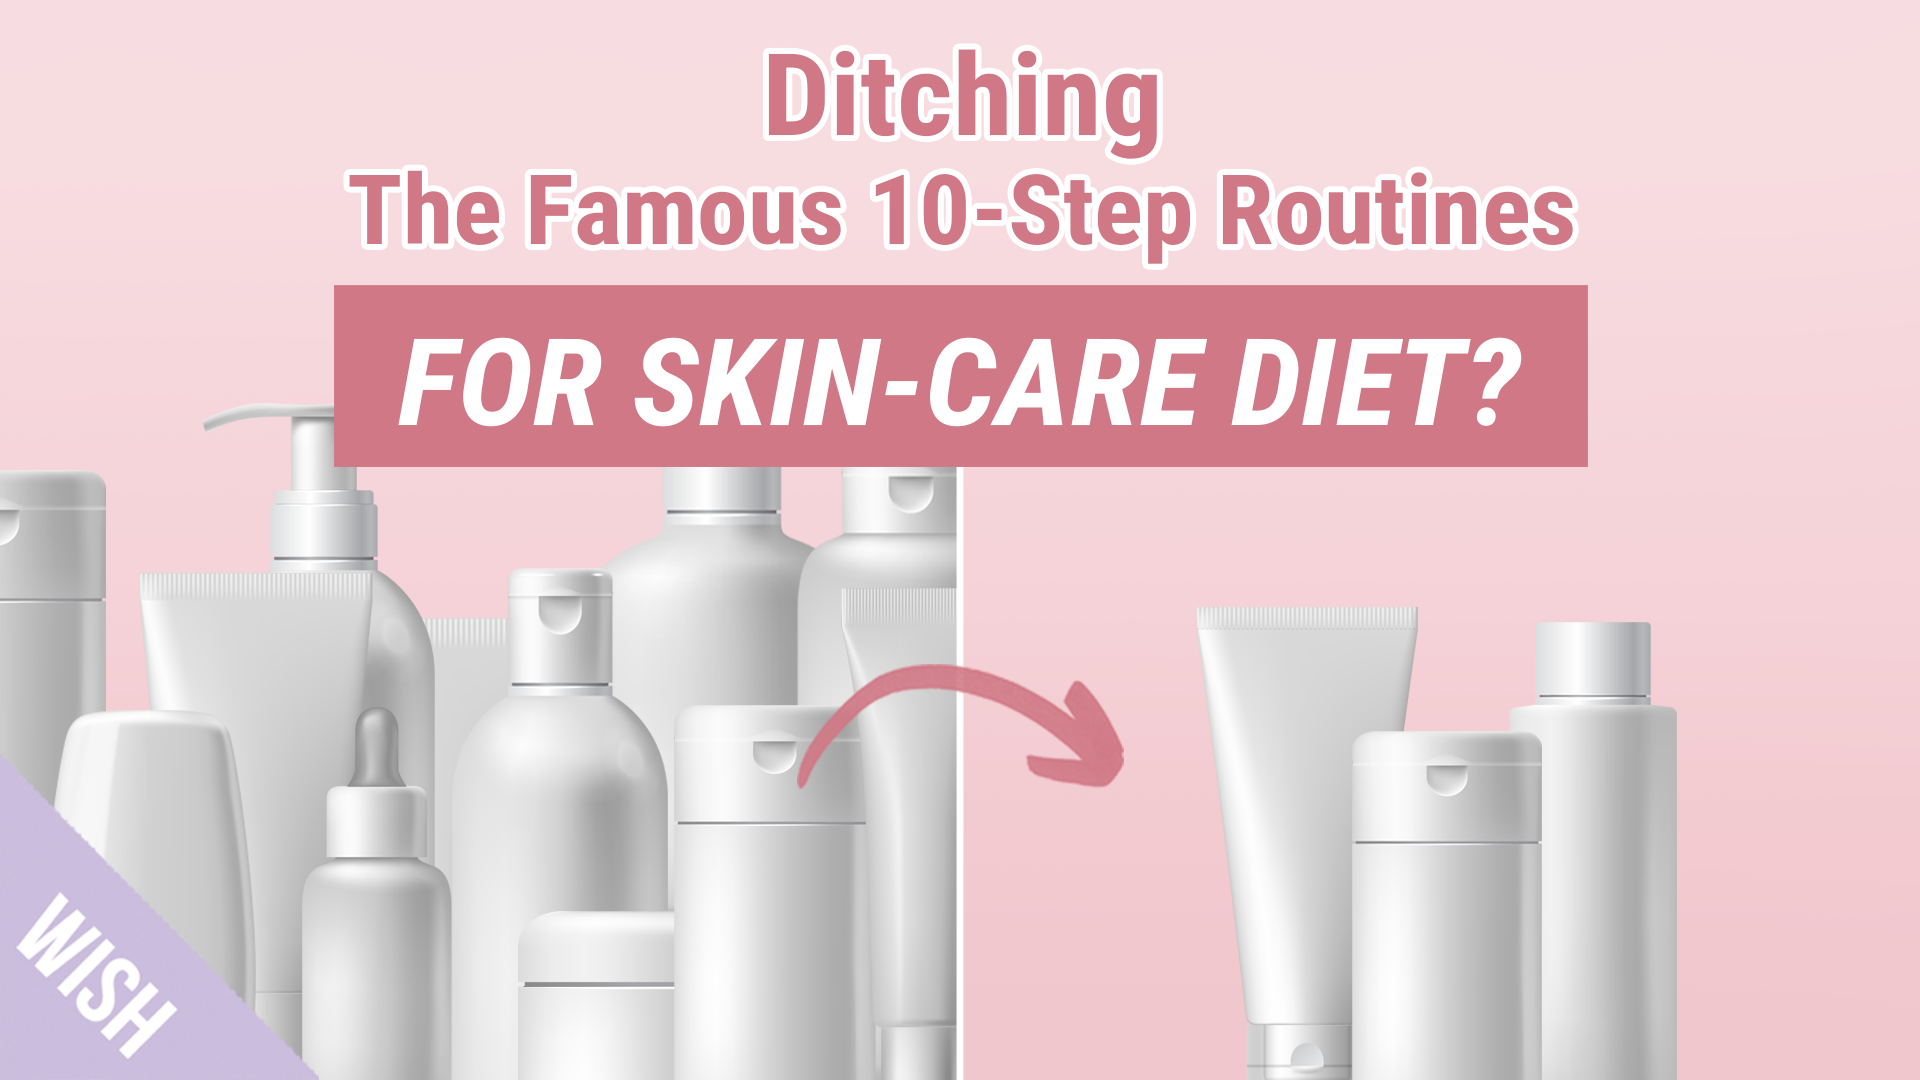 How To Cut Down Skincare Routine Properly | Skincare Diet Could Be The Answer To Your Skin Problems